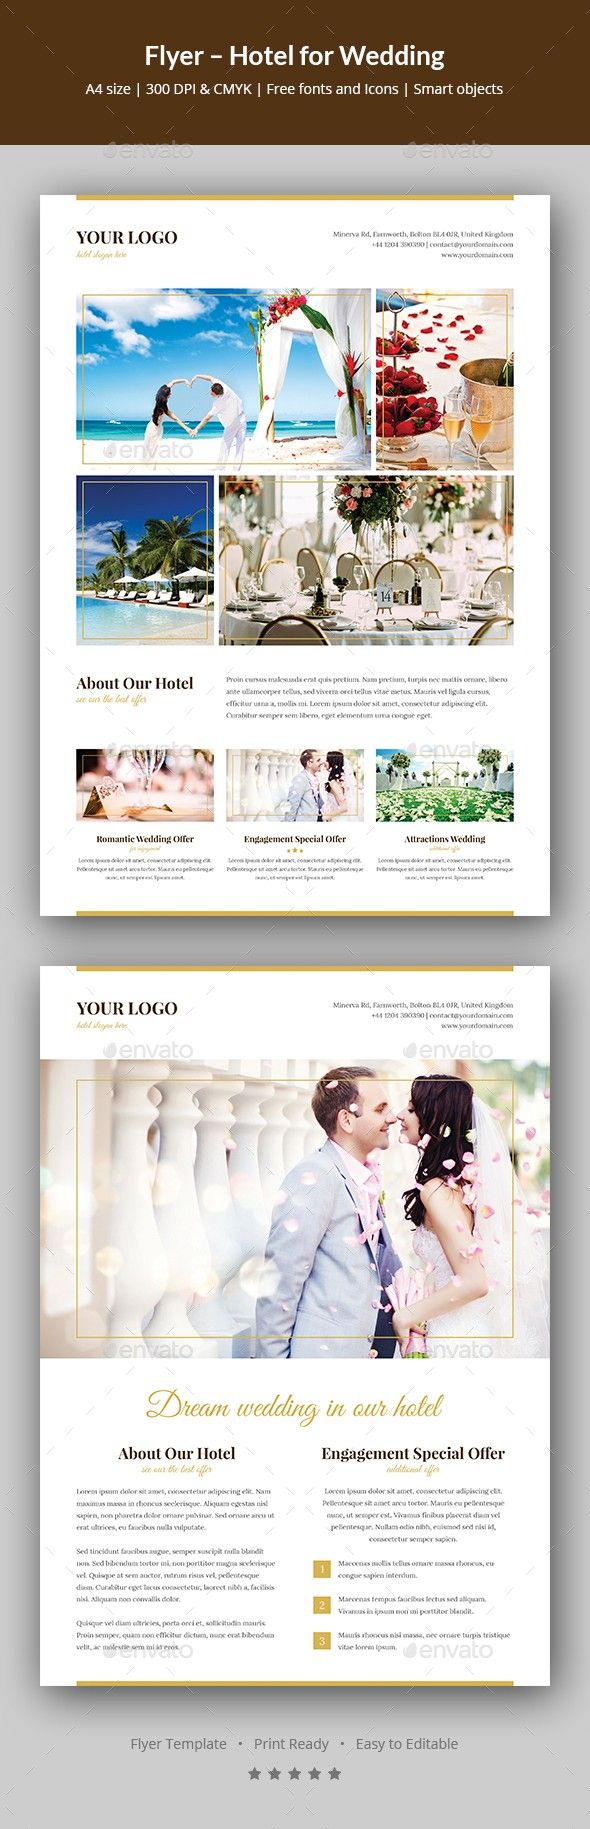 Flyer Outline Gorgeous Flyer  Hotel For Wedding  Flyer Template And Template